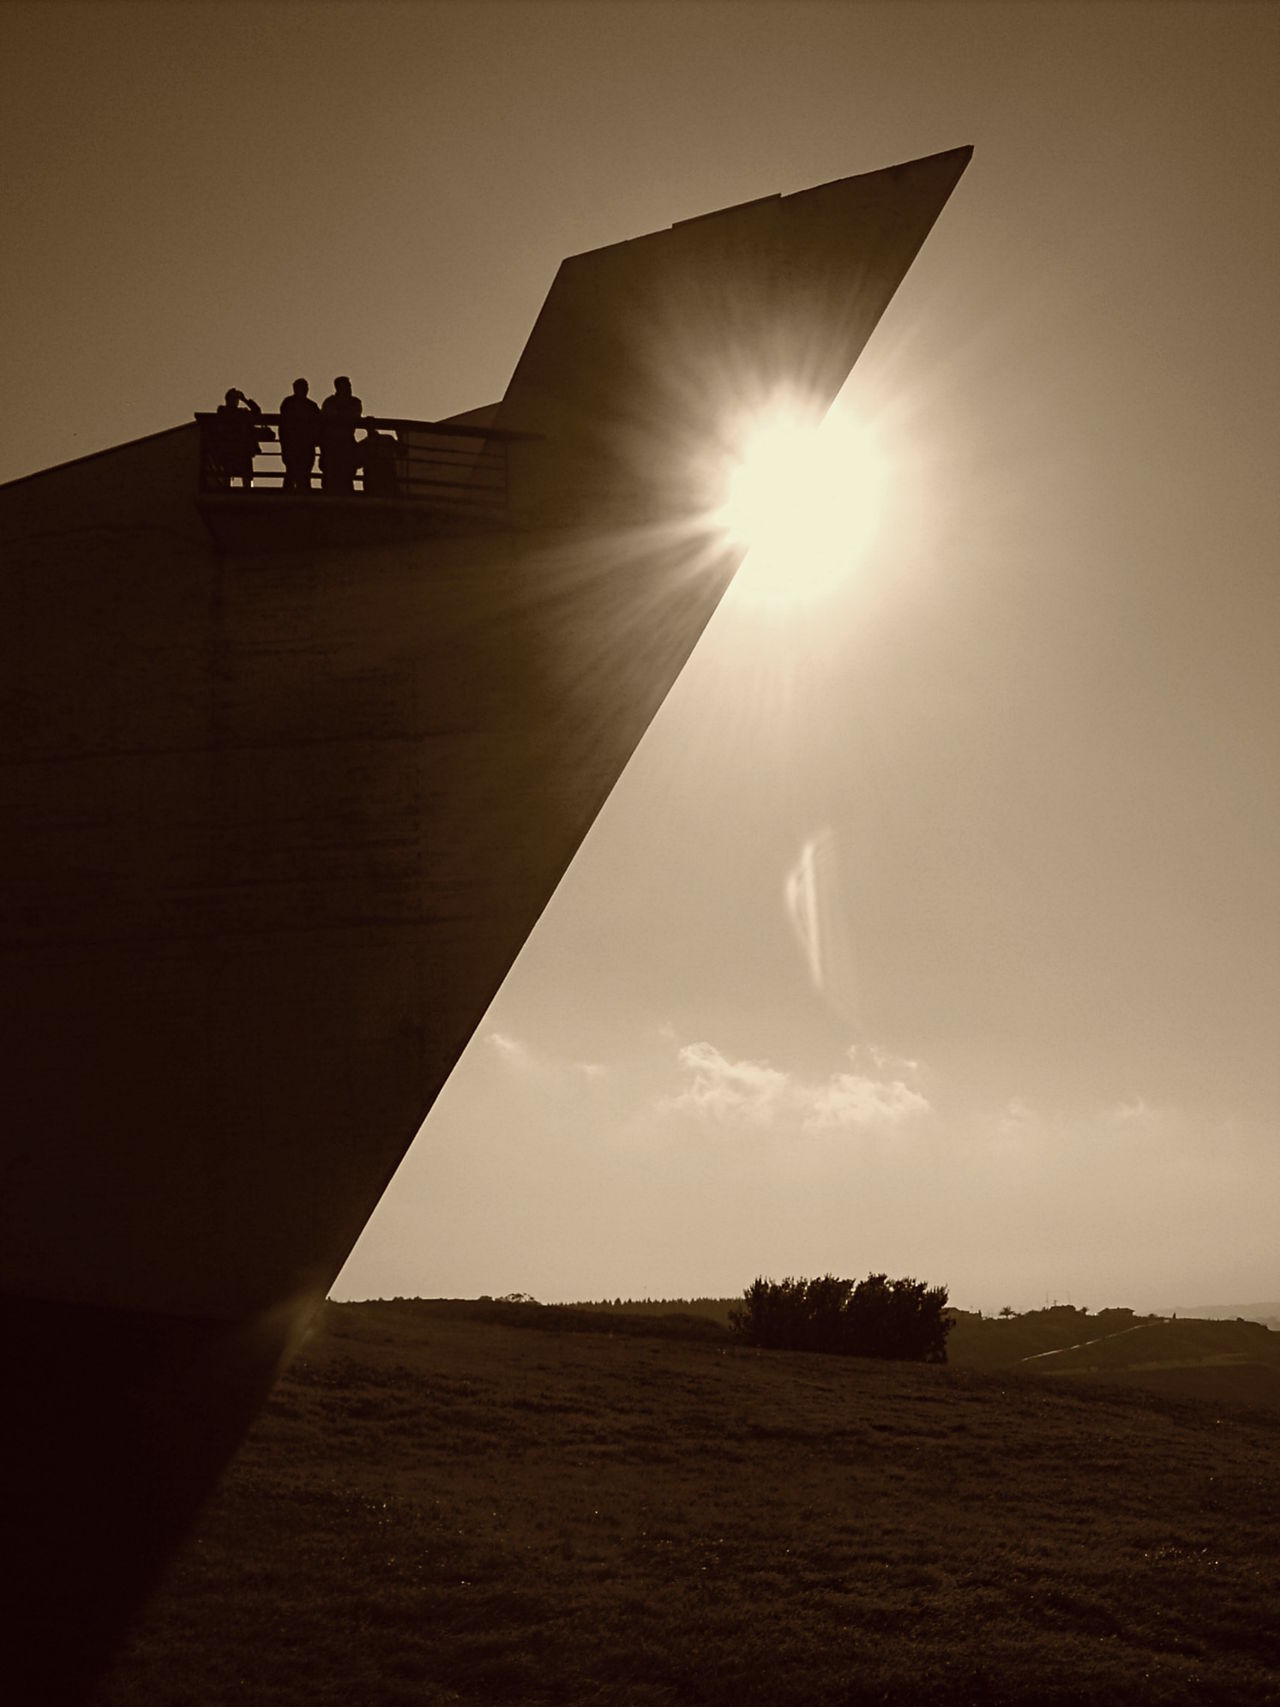 Beauty In Nature Day Lens Flare Monument Nature Outdoors Sepia Sky Sun Sunbeam Sunlight Sunset